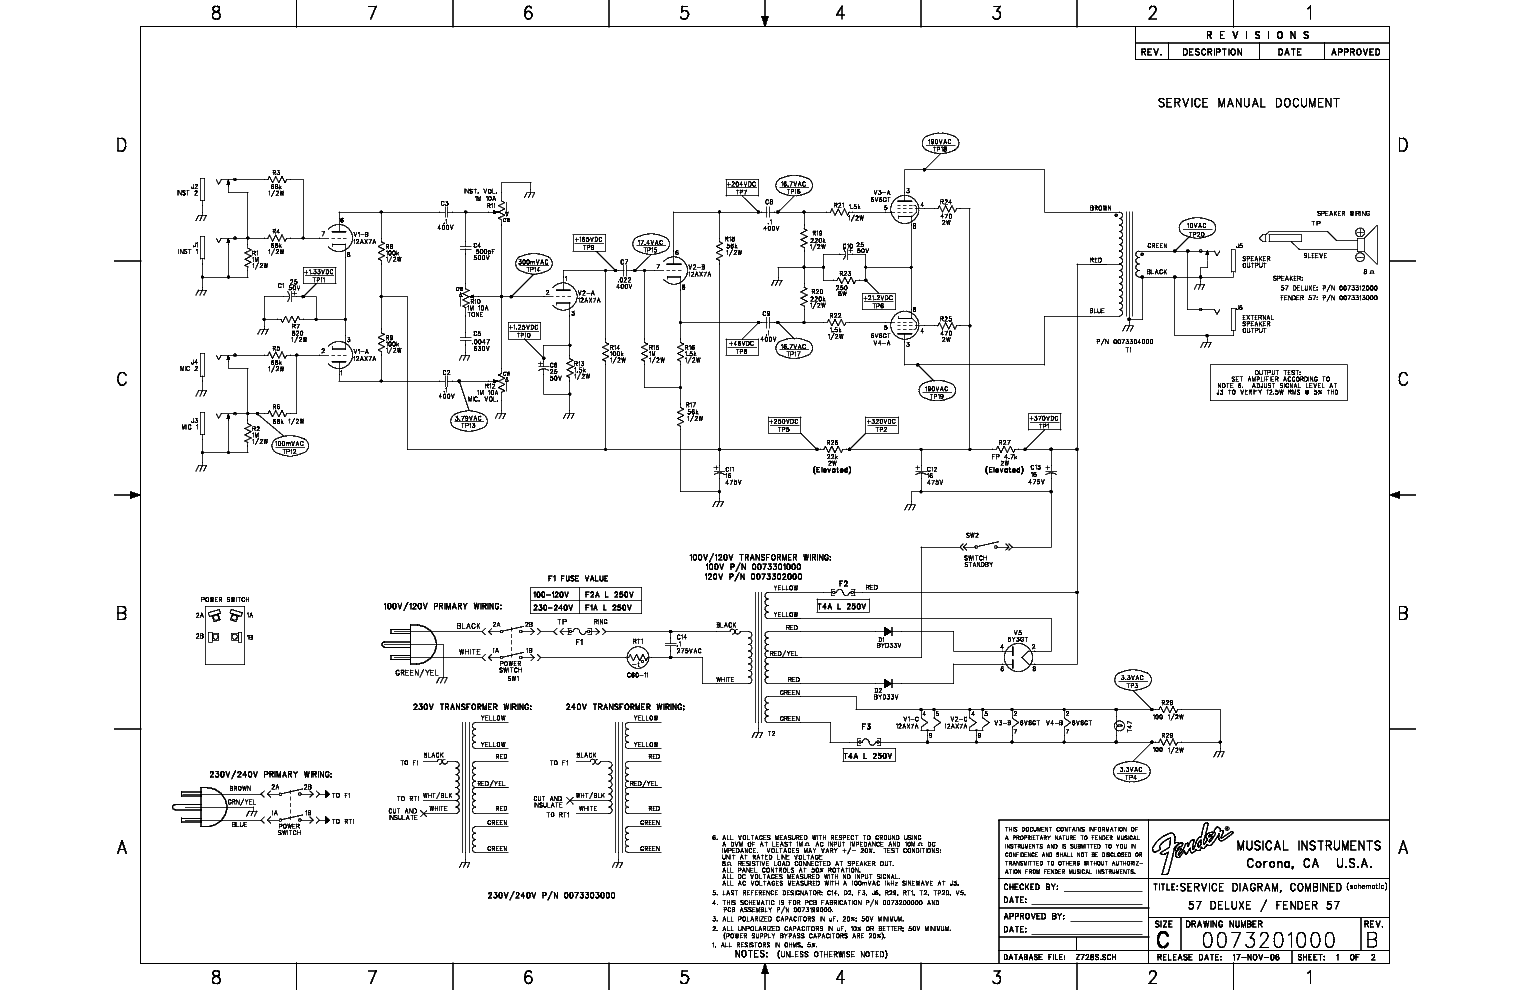 Fender deluxe Service Manual on